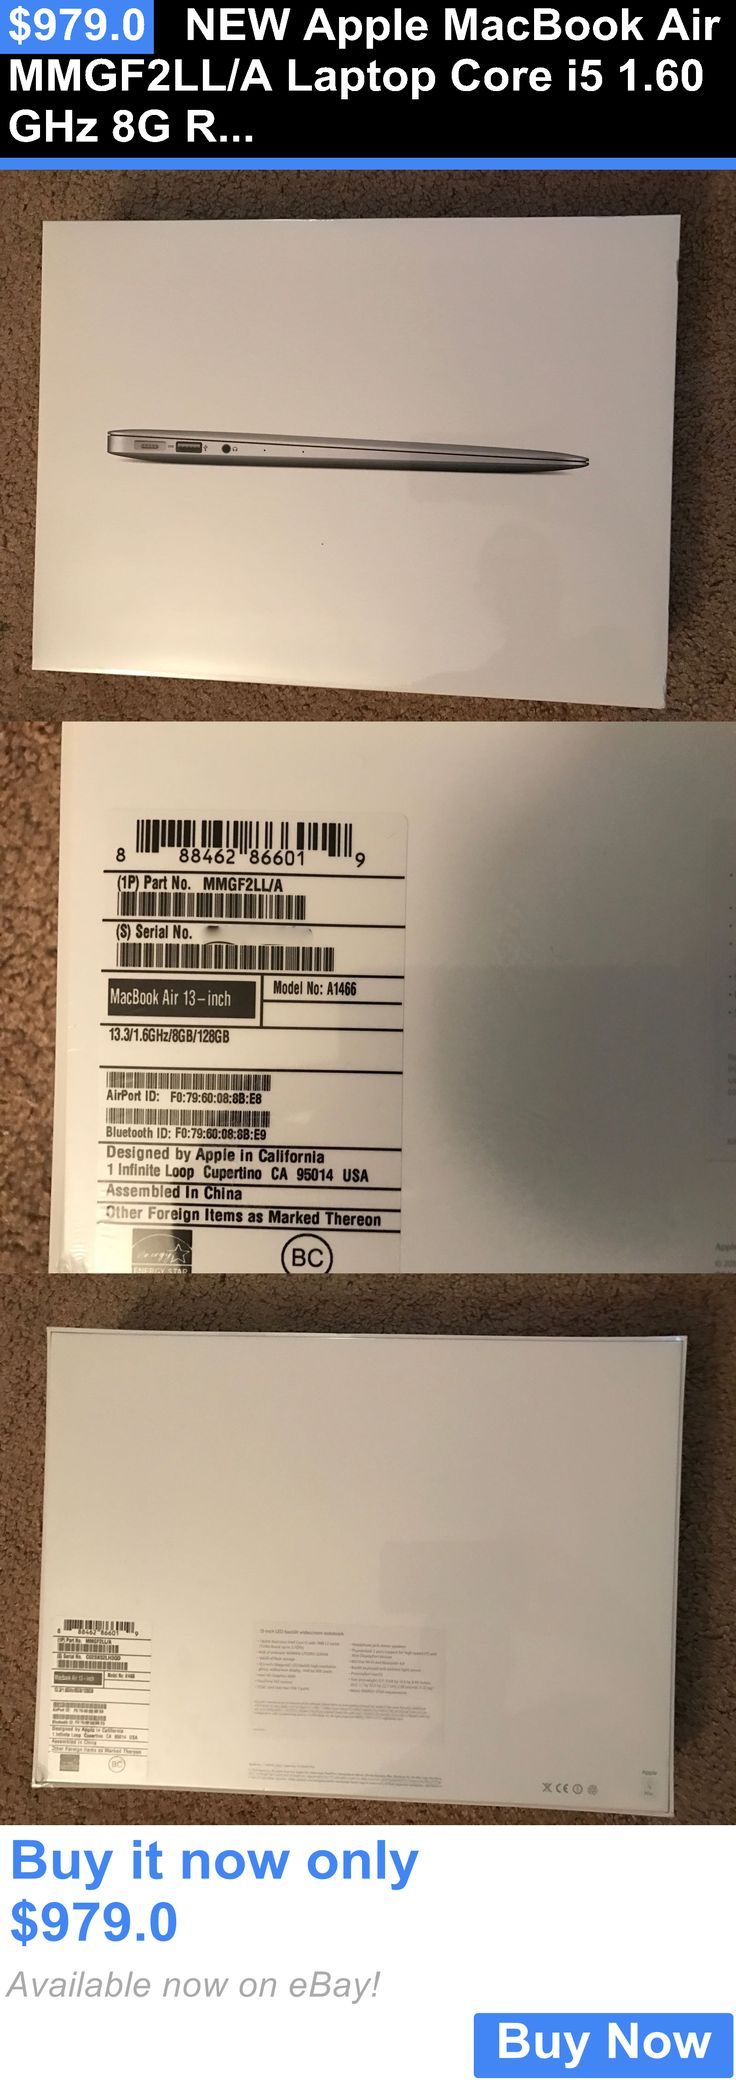 general for sale: New Apple Macbook Air Mmgf2ll/A Laptop Core I5 1.60 Ghz 8G Ram 128Gb Ssd 13.3 BUY IT NOW ONLY: $979.0